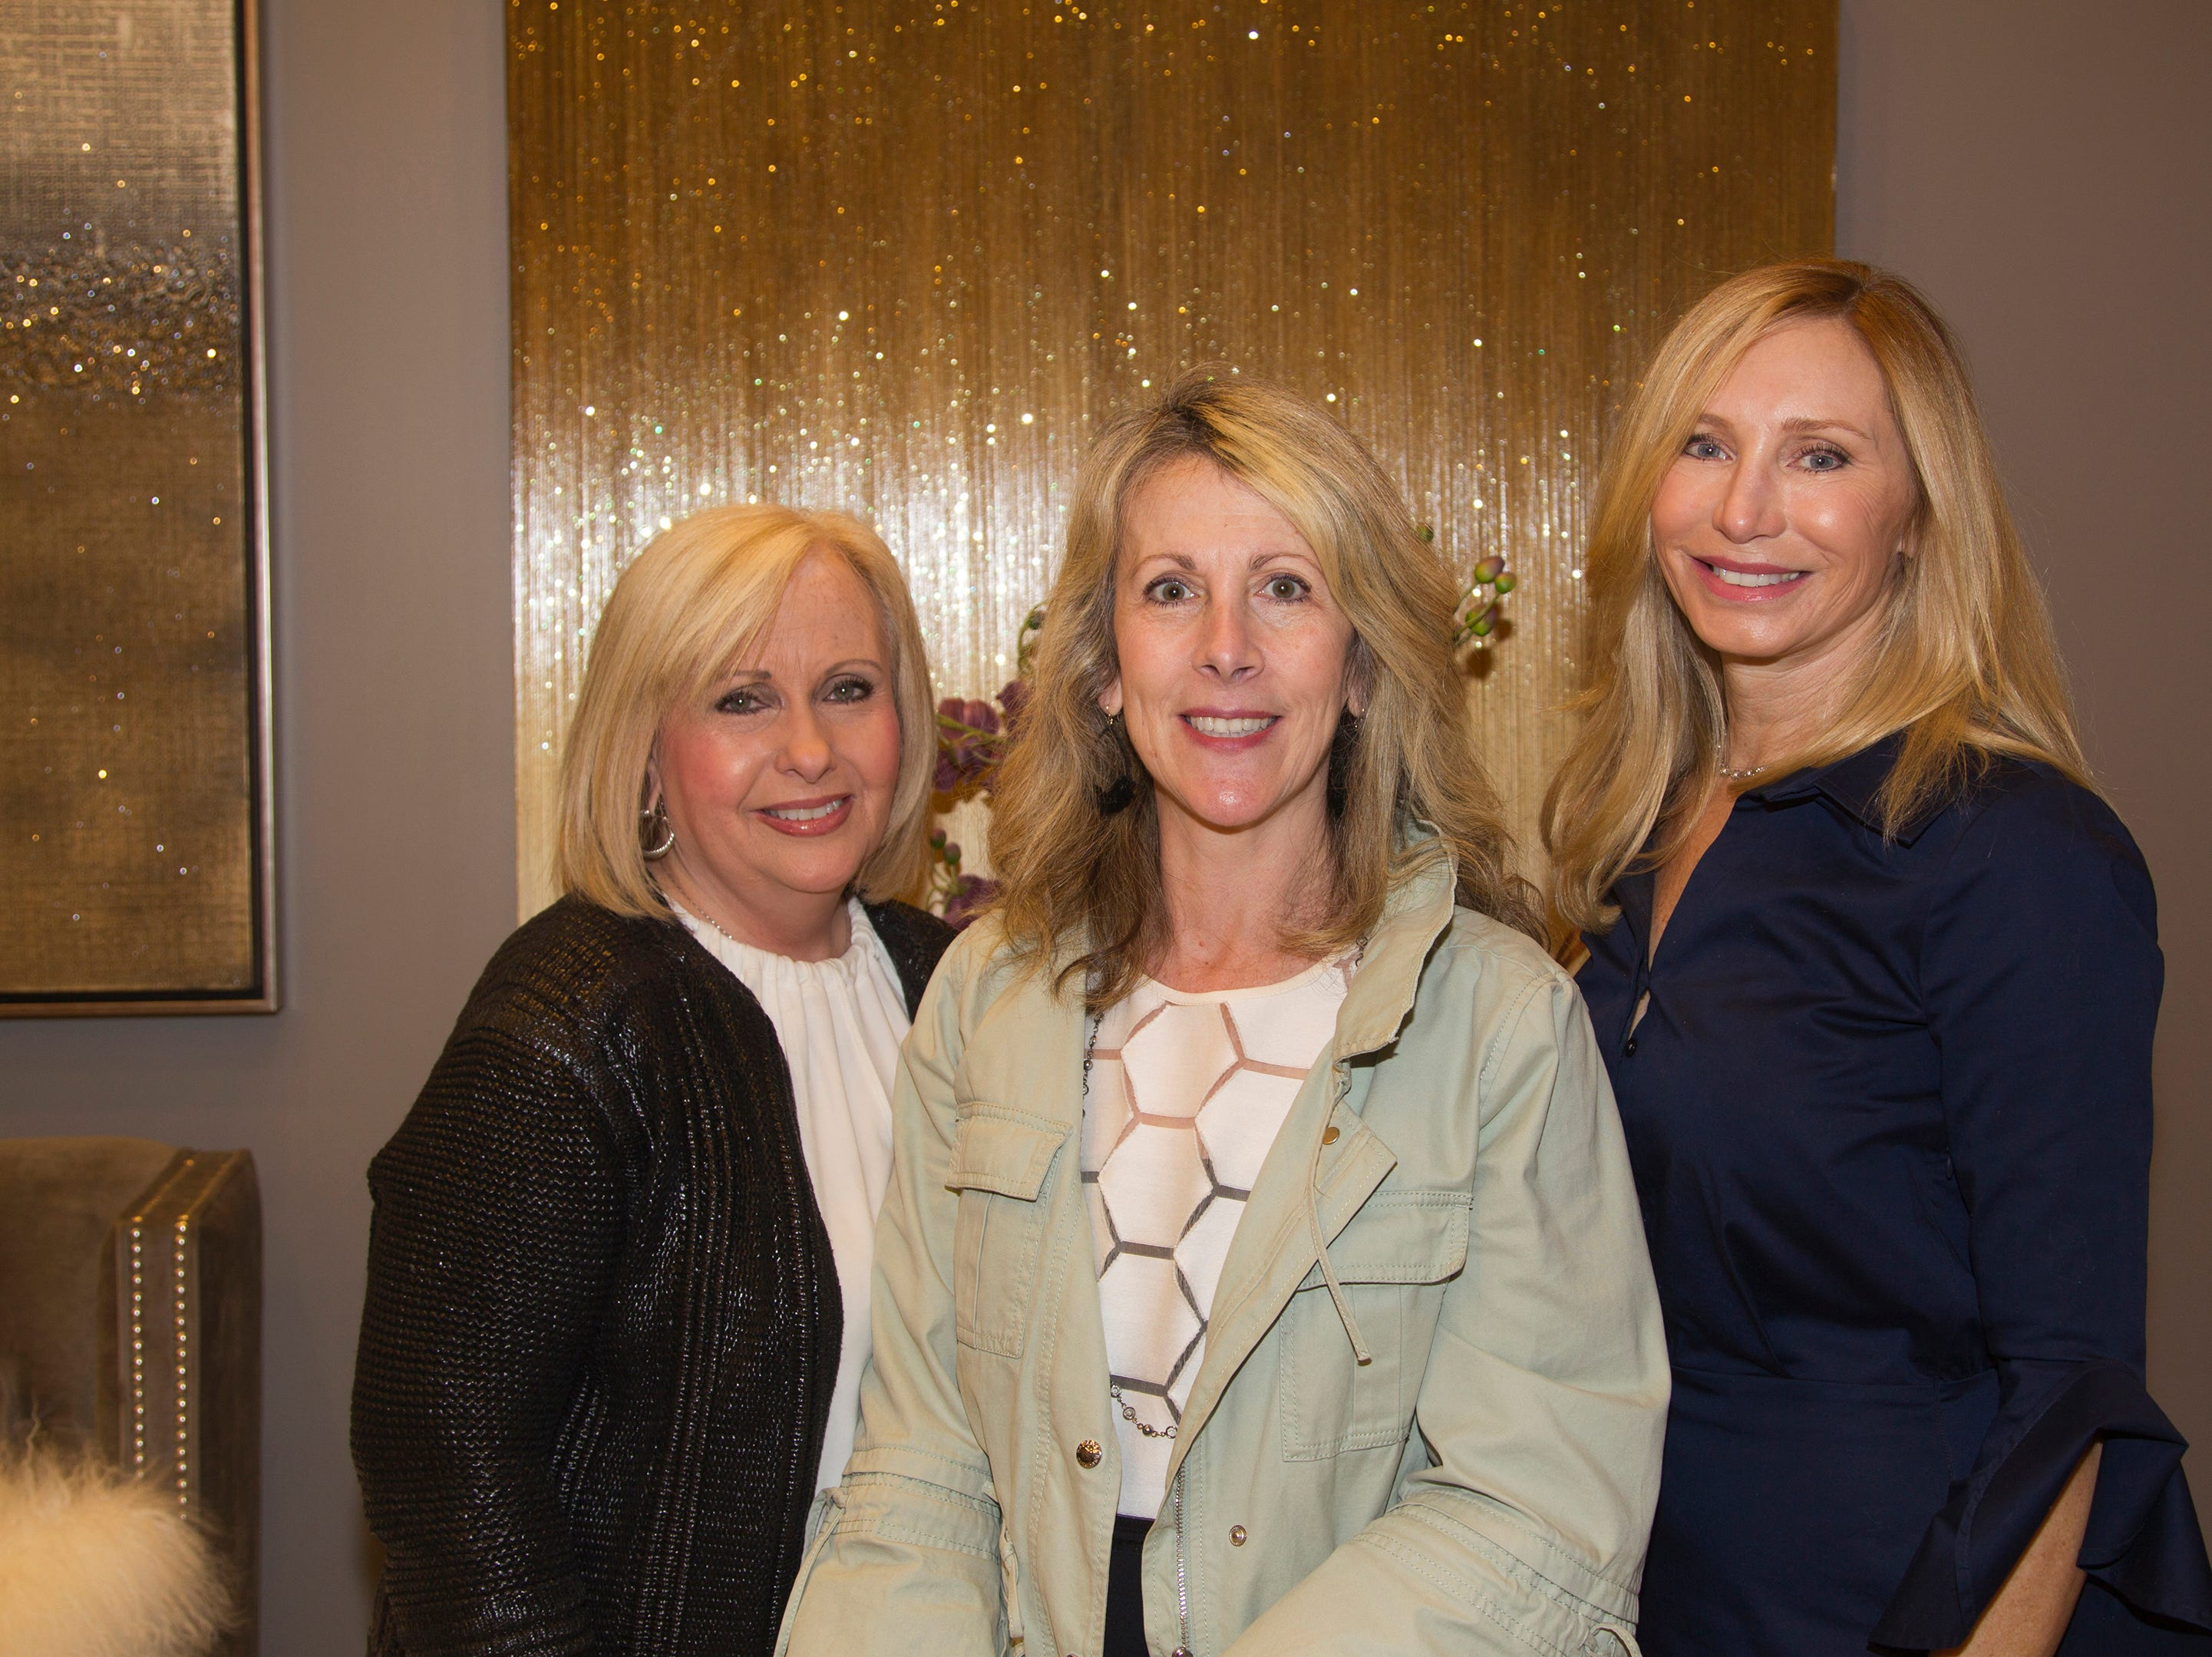 Kathie Durante, Ronnie O'Neill, Darlene Finn. Westfield Garden State Plaza held its Meet the Artist & Trend Show benefitting The Valley Hospital Auxillary Saddle River Branch. 04/03/2019